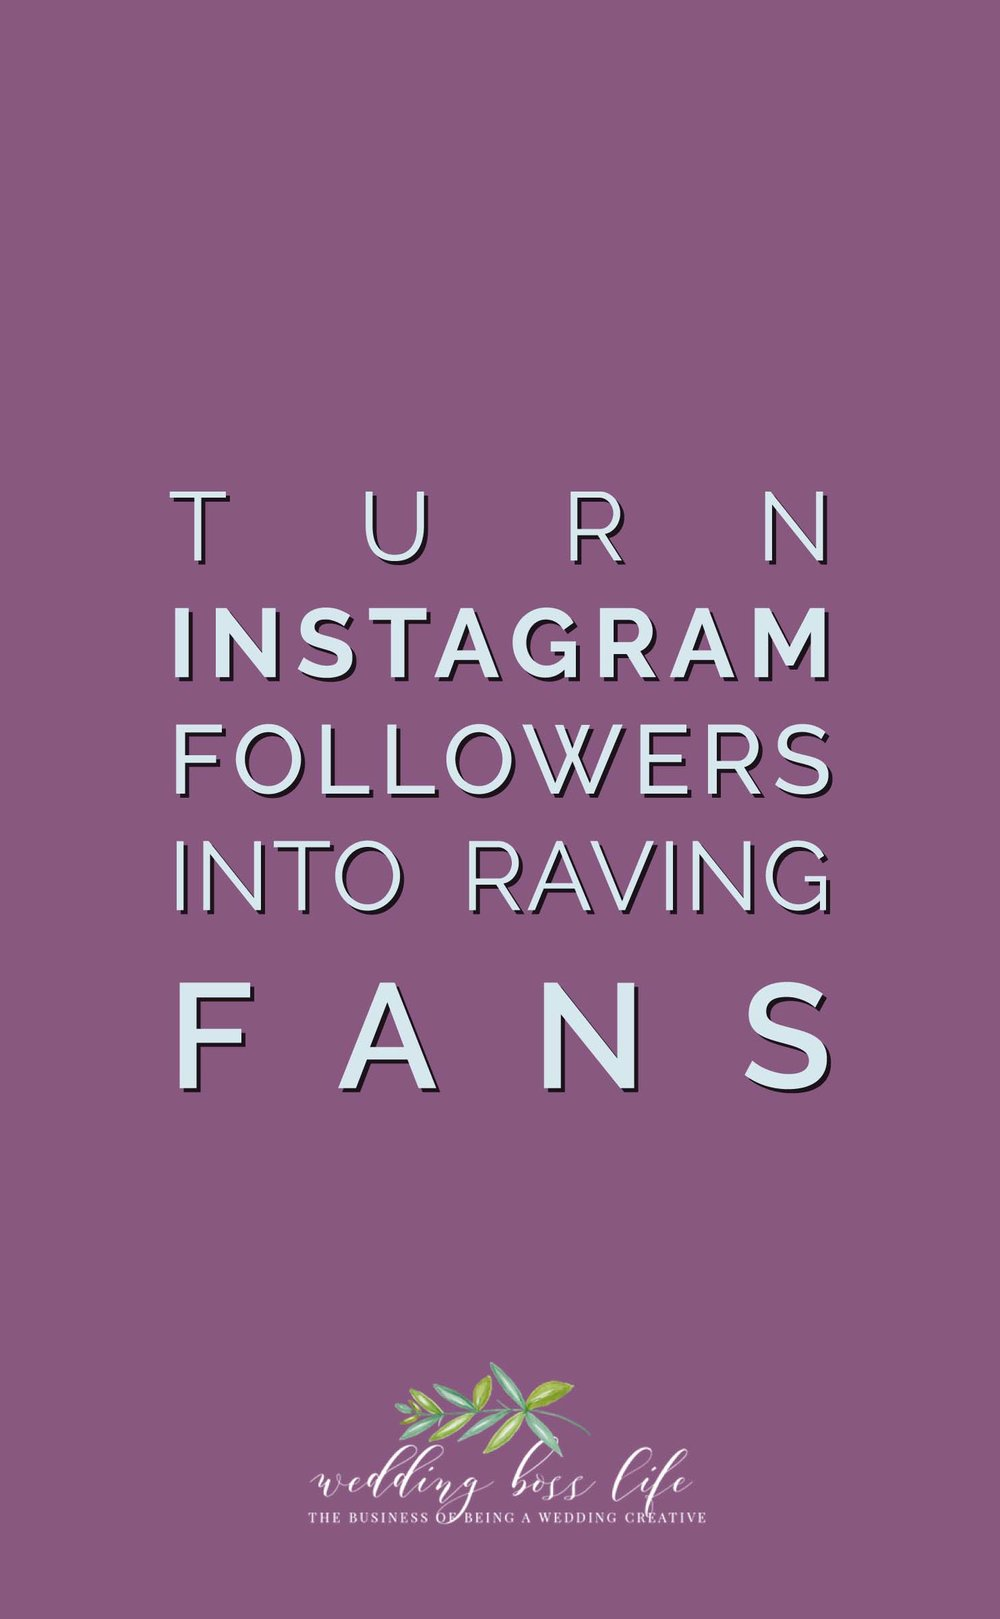 Turn Instagram Followers into Raving Fans